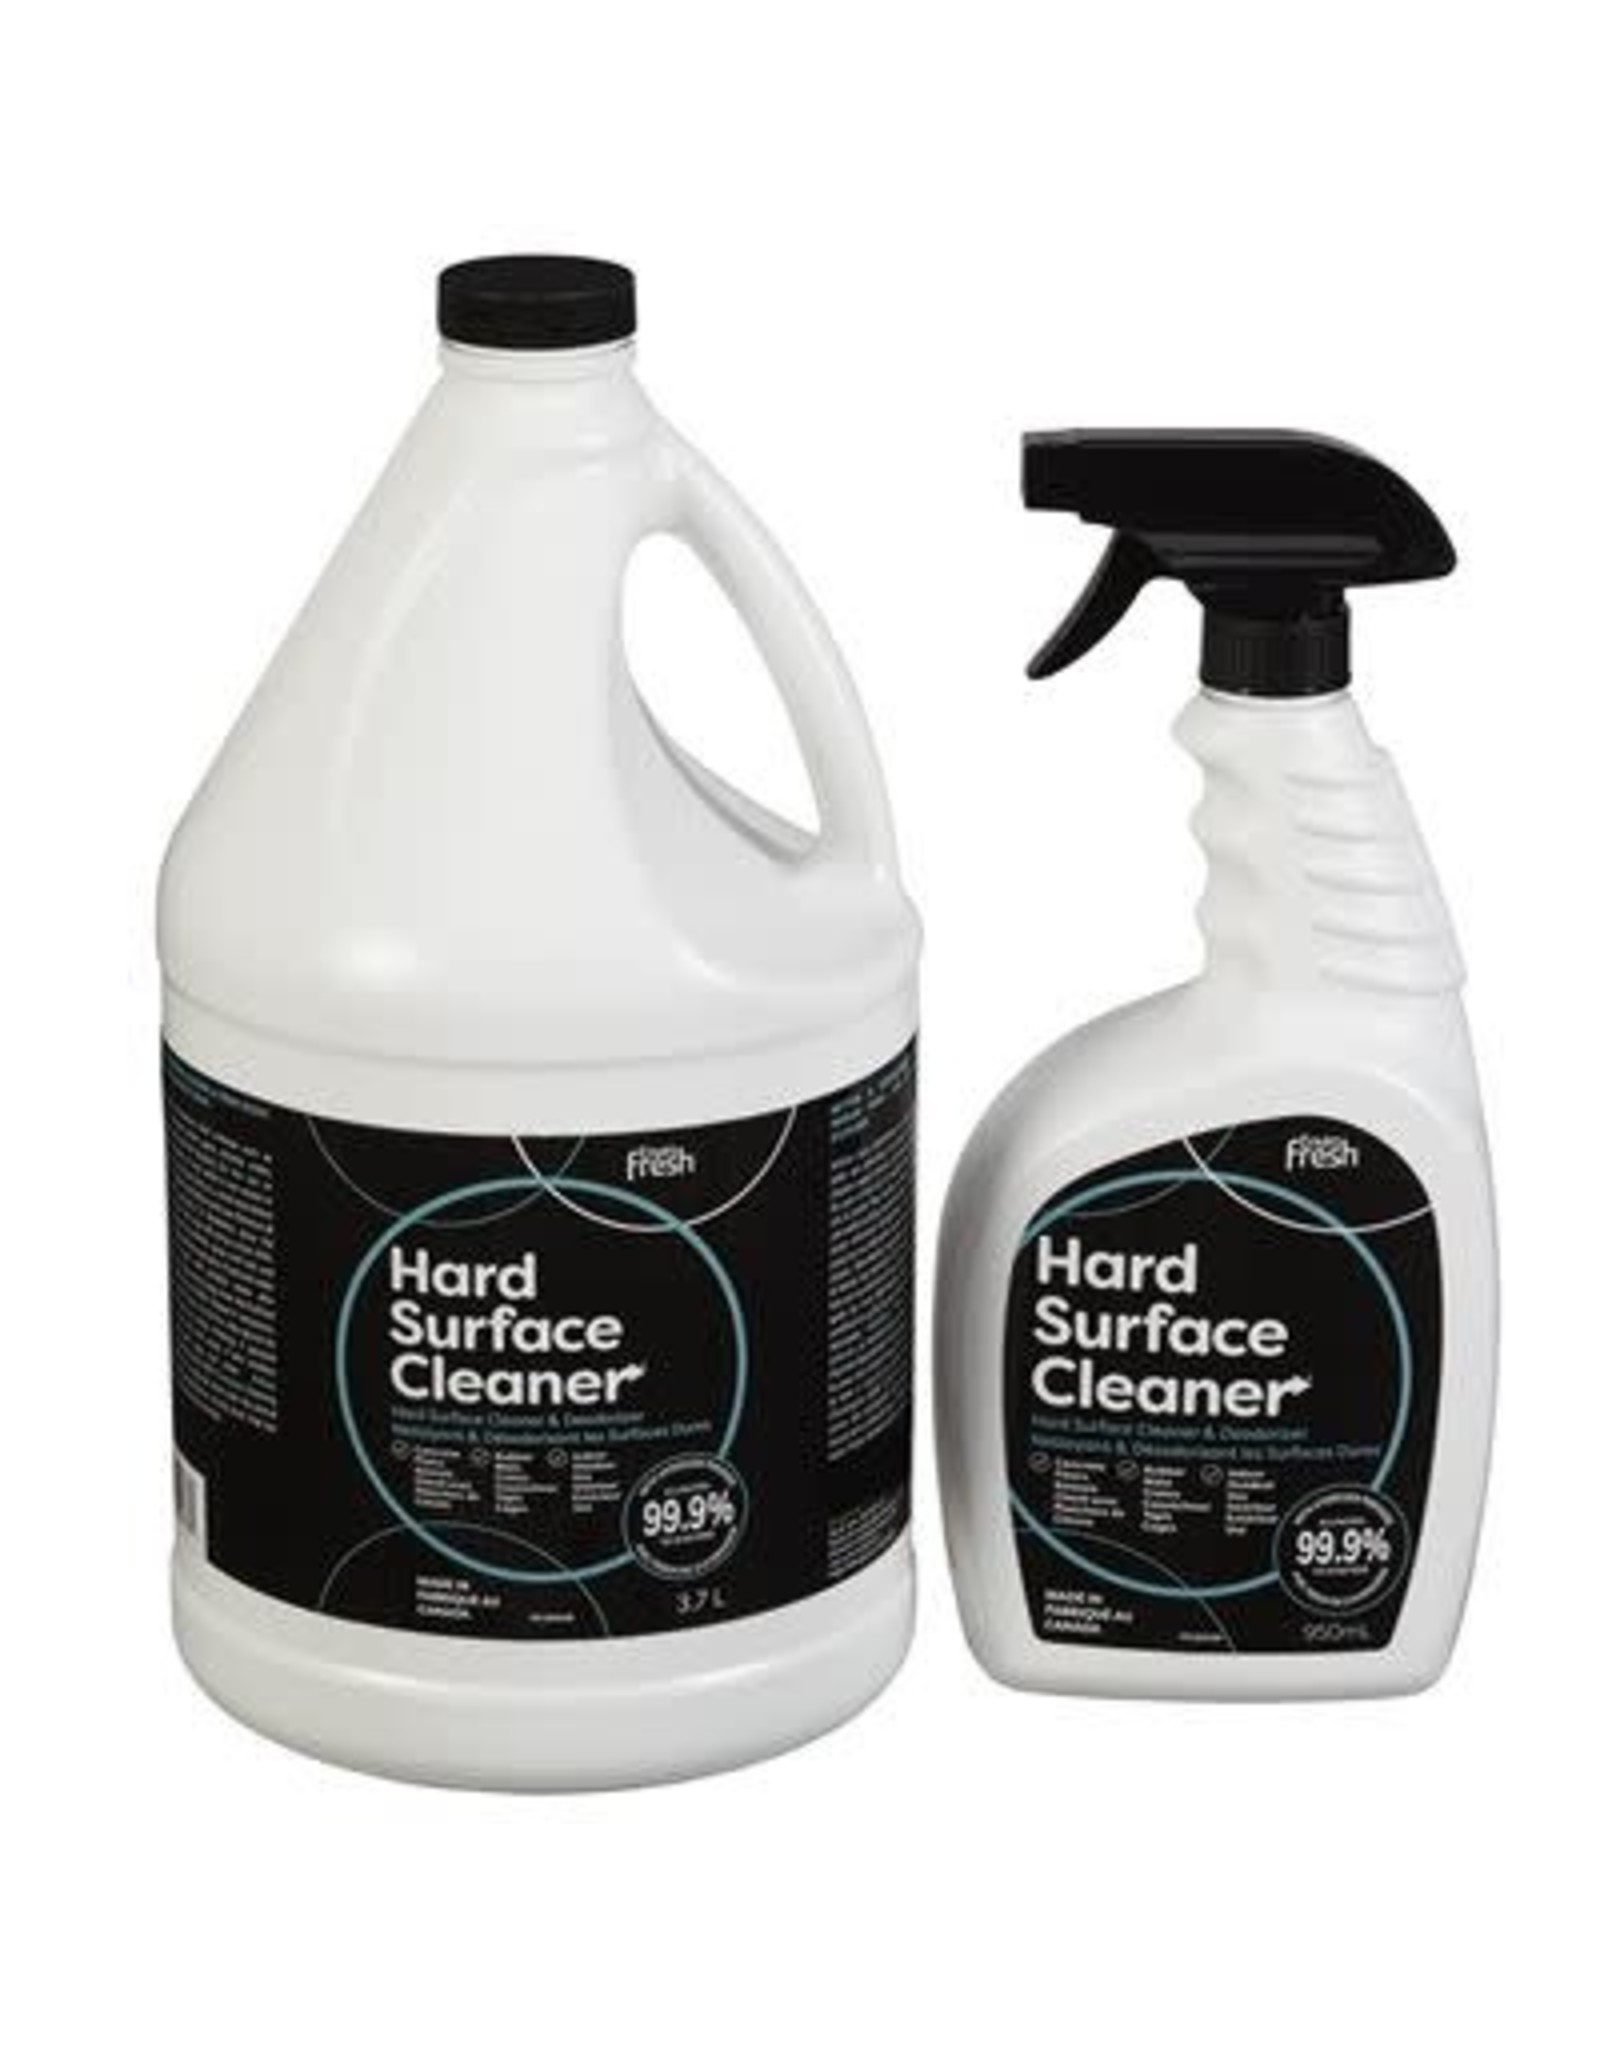 Hard Surface Cleaner Kills 99.9% of Bacteria